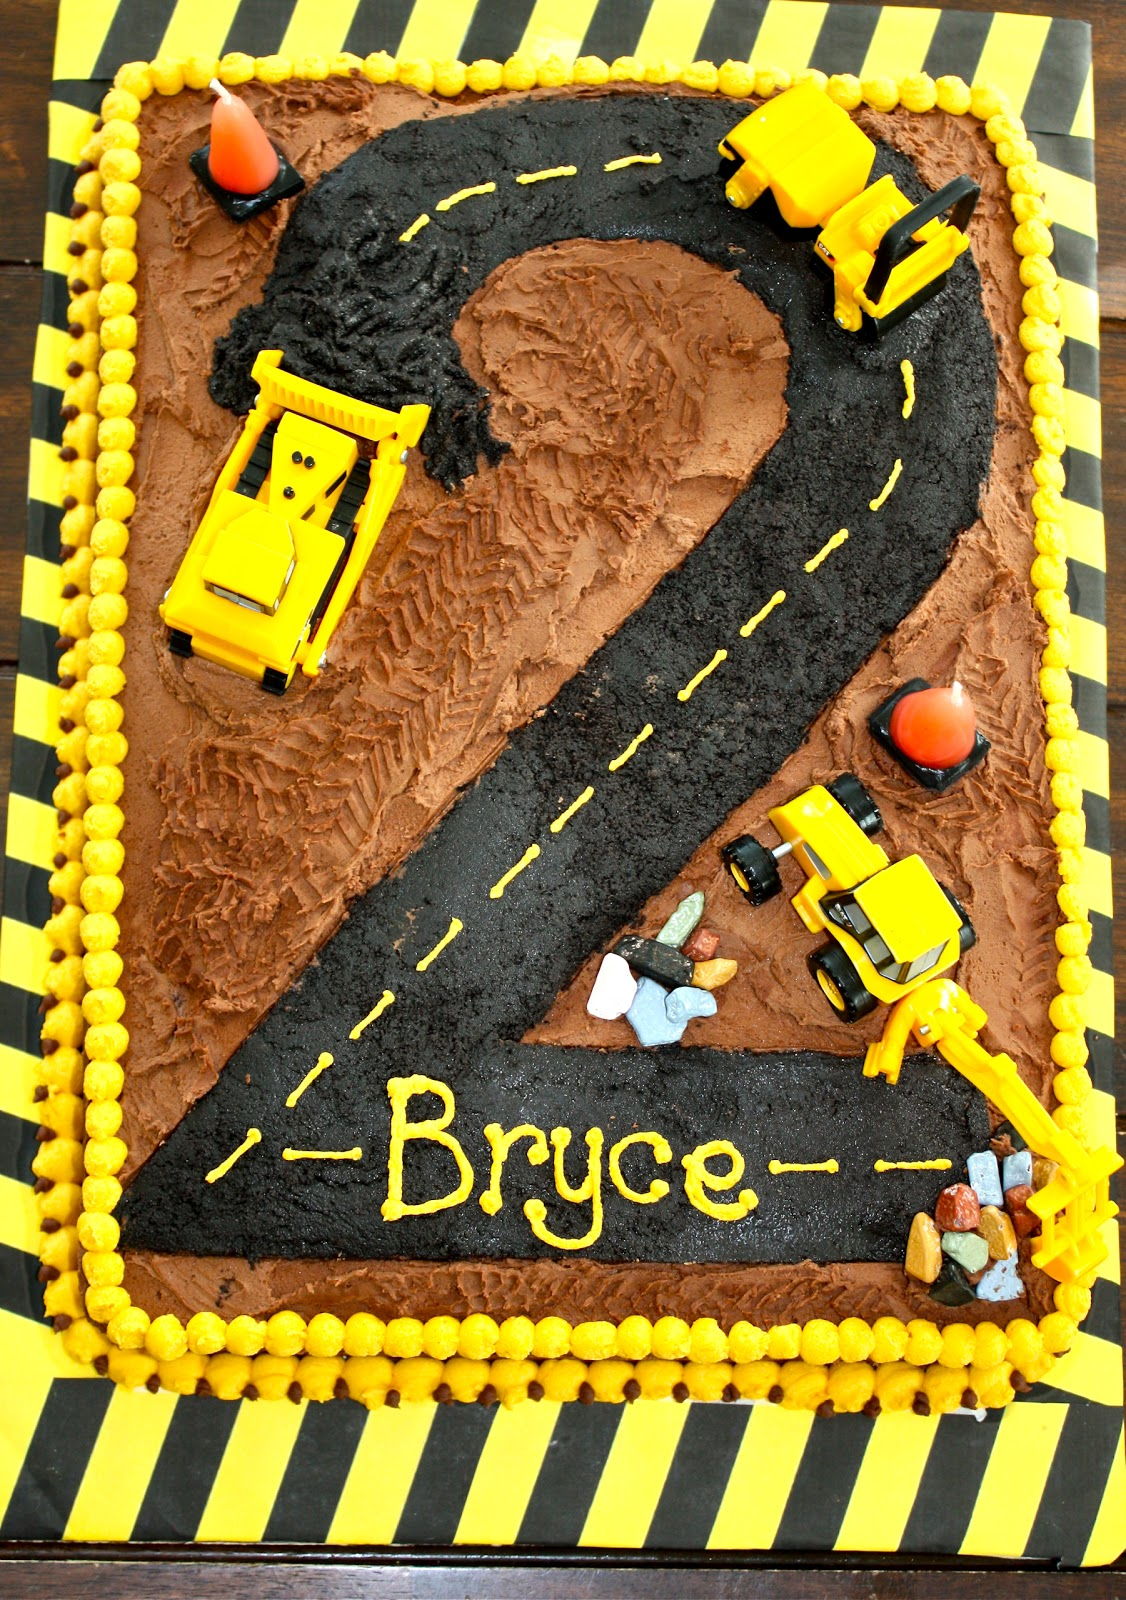 Construction Site Sheet Cake Ideas And Designs